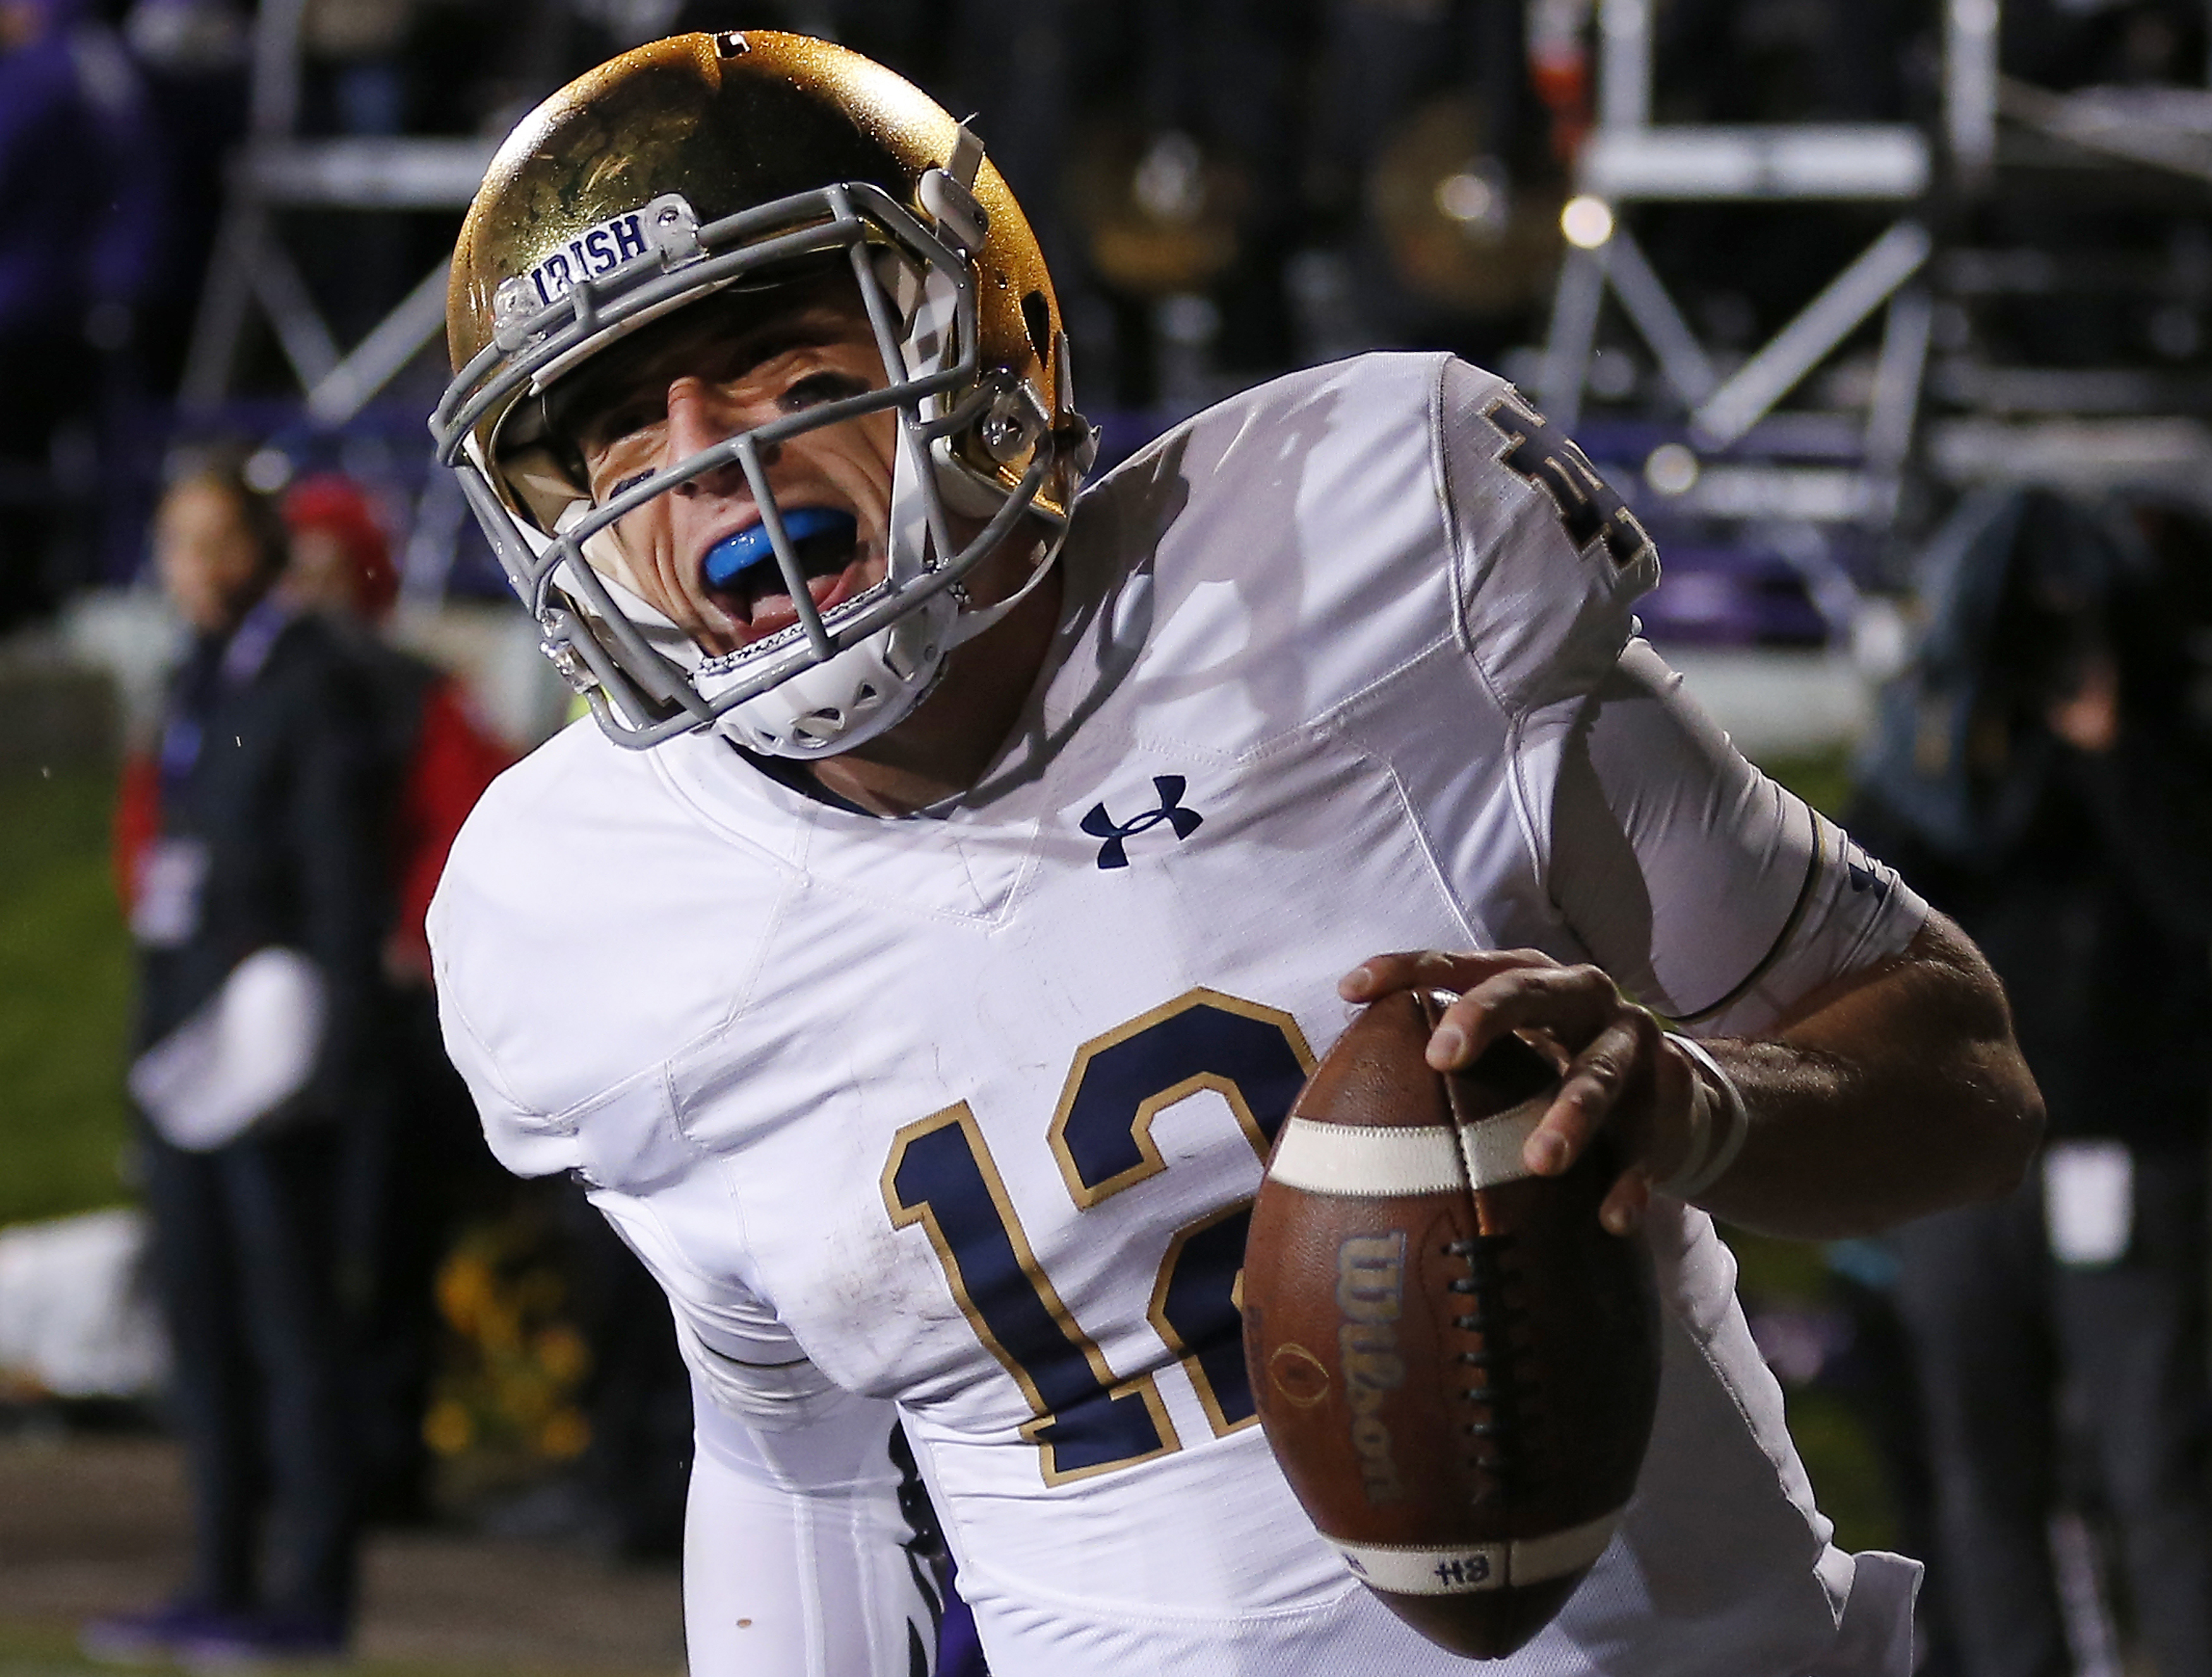 FILE - In this Saturday, Nov. 3, 2018, file photo, Notre Dame's Ian Book celebrates as he scores a touchdown against Northwestern during the second half of an NCAA college football game in Evanston, Ill. Third-ranked Notre Dame will put its unbeaten record on the line when it faces No. 12 Syracuse at New York's Yankee Stadium on Saturday. (AP Photo/Jim Young, File)